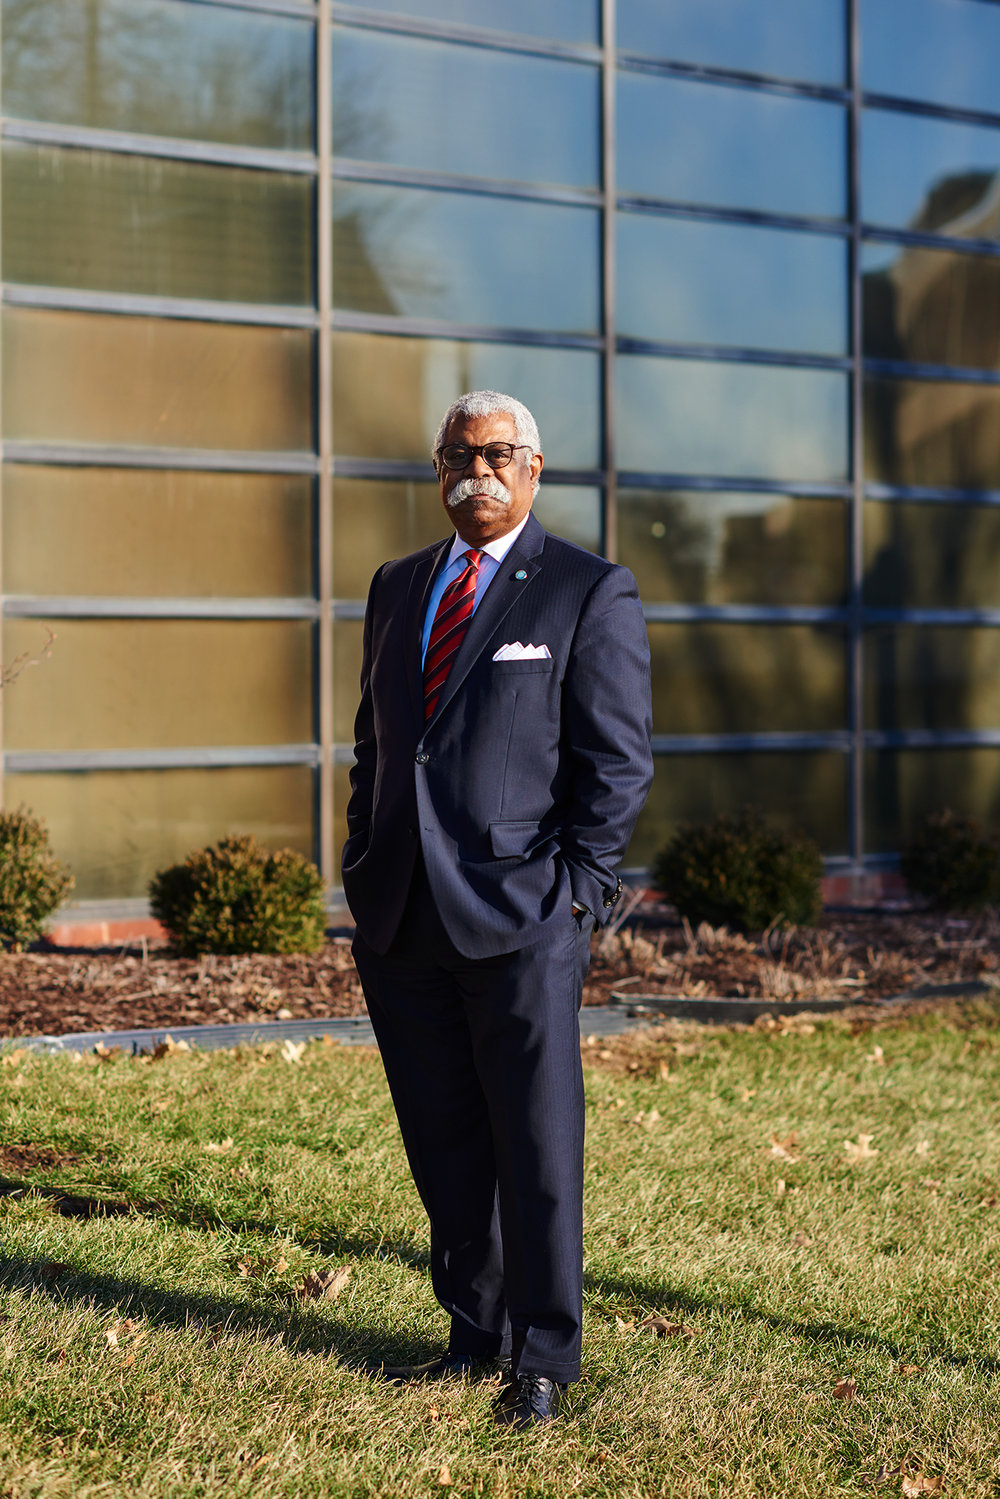 William Gary, executive vice president of workforce, community and economic development at Cuyahoga Community College, poses for a portrait at the Manufacturing Technology Center at Tri-C in Cleveland, Ohio on February 4, 2019. Dustin Franz for The New York Times